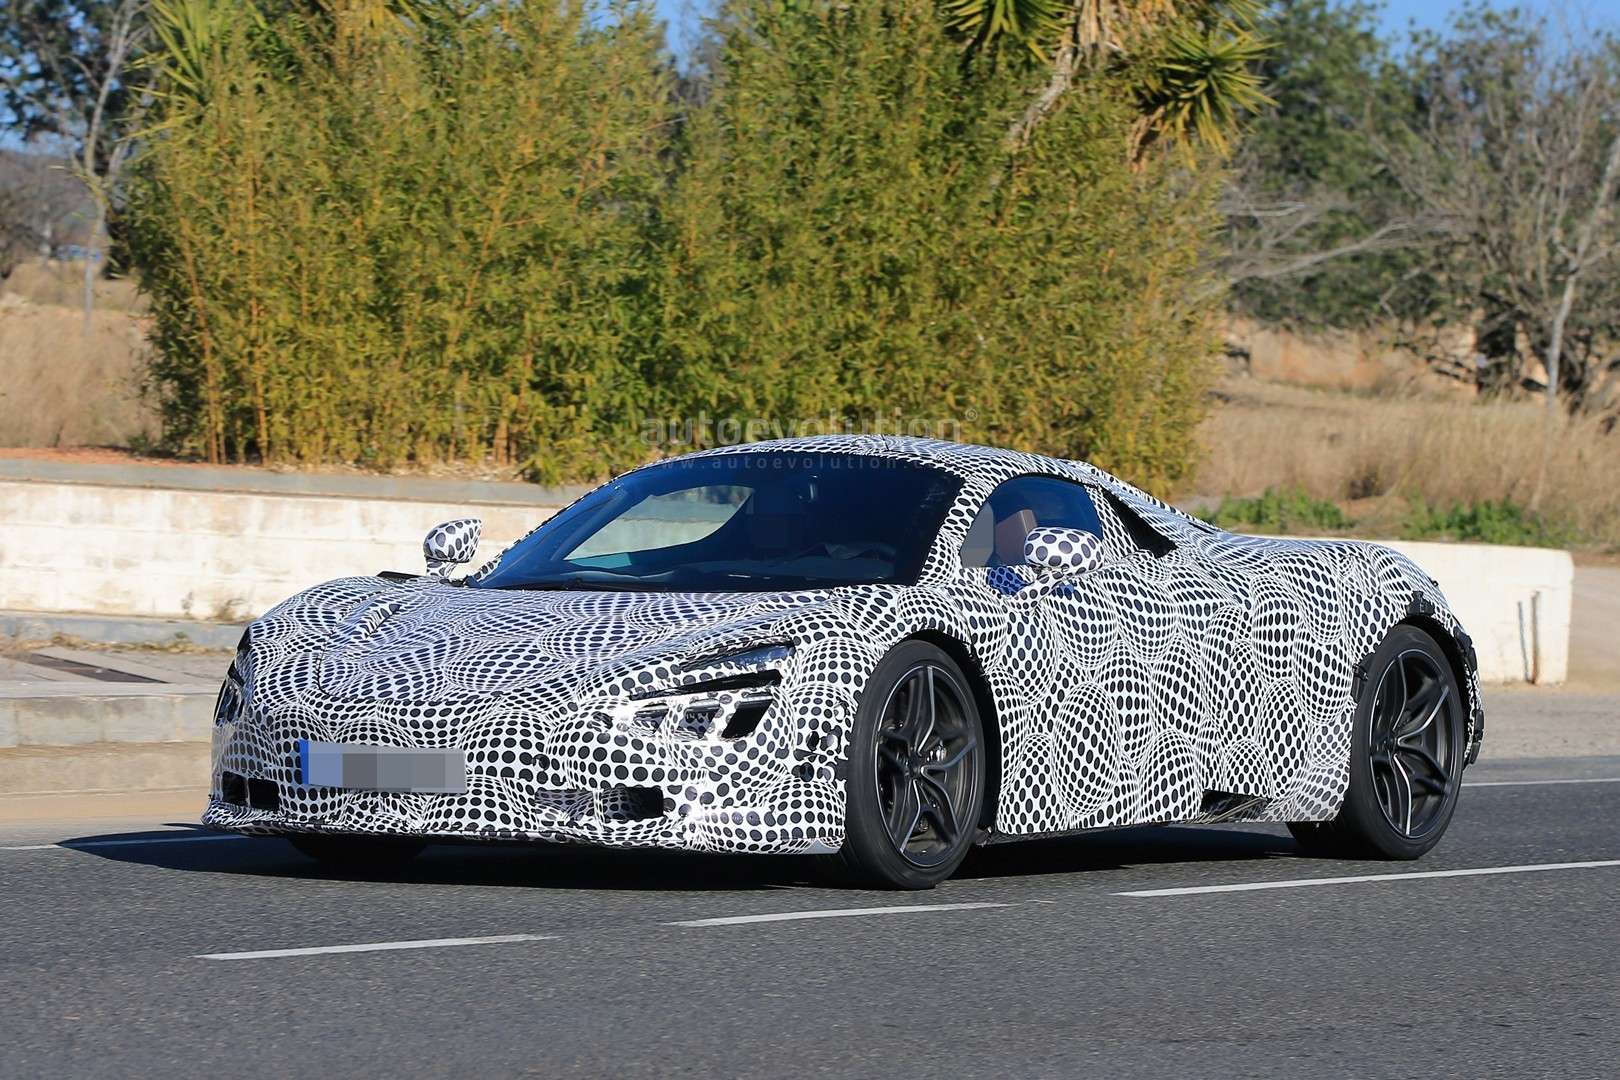 2018 McLaren 720S (P14) Spied With Black and White ...